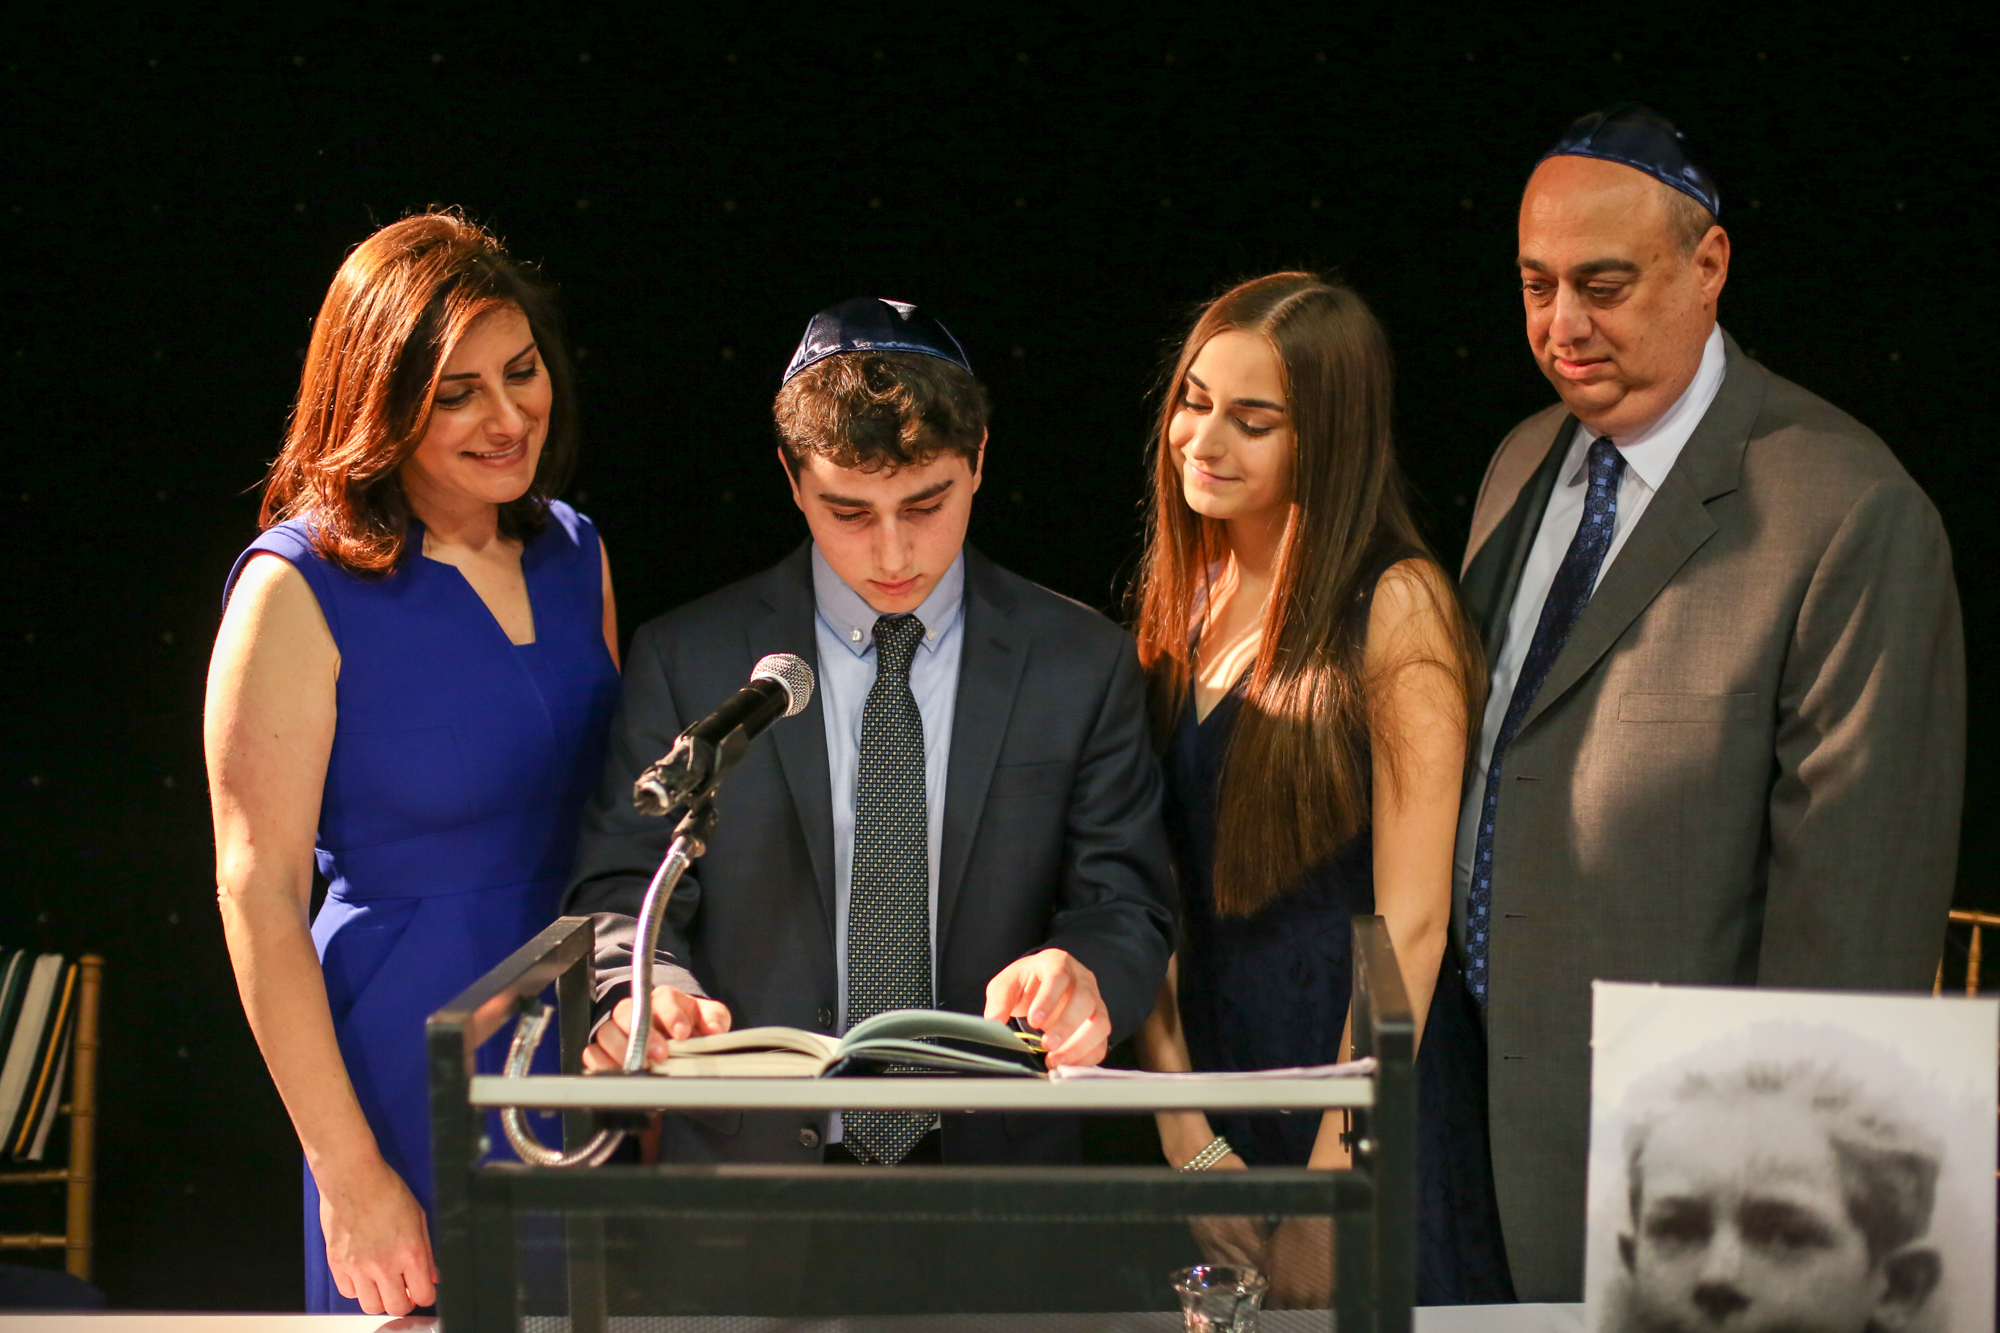 Max_Bar_Mitzvah_Preview (20 of 68).jpg